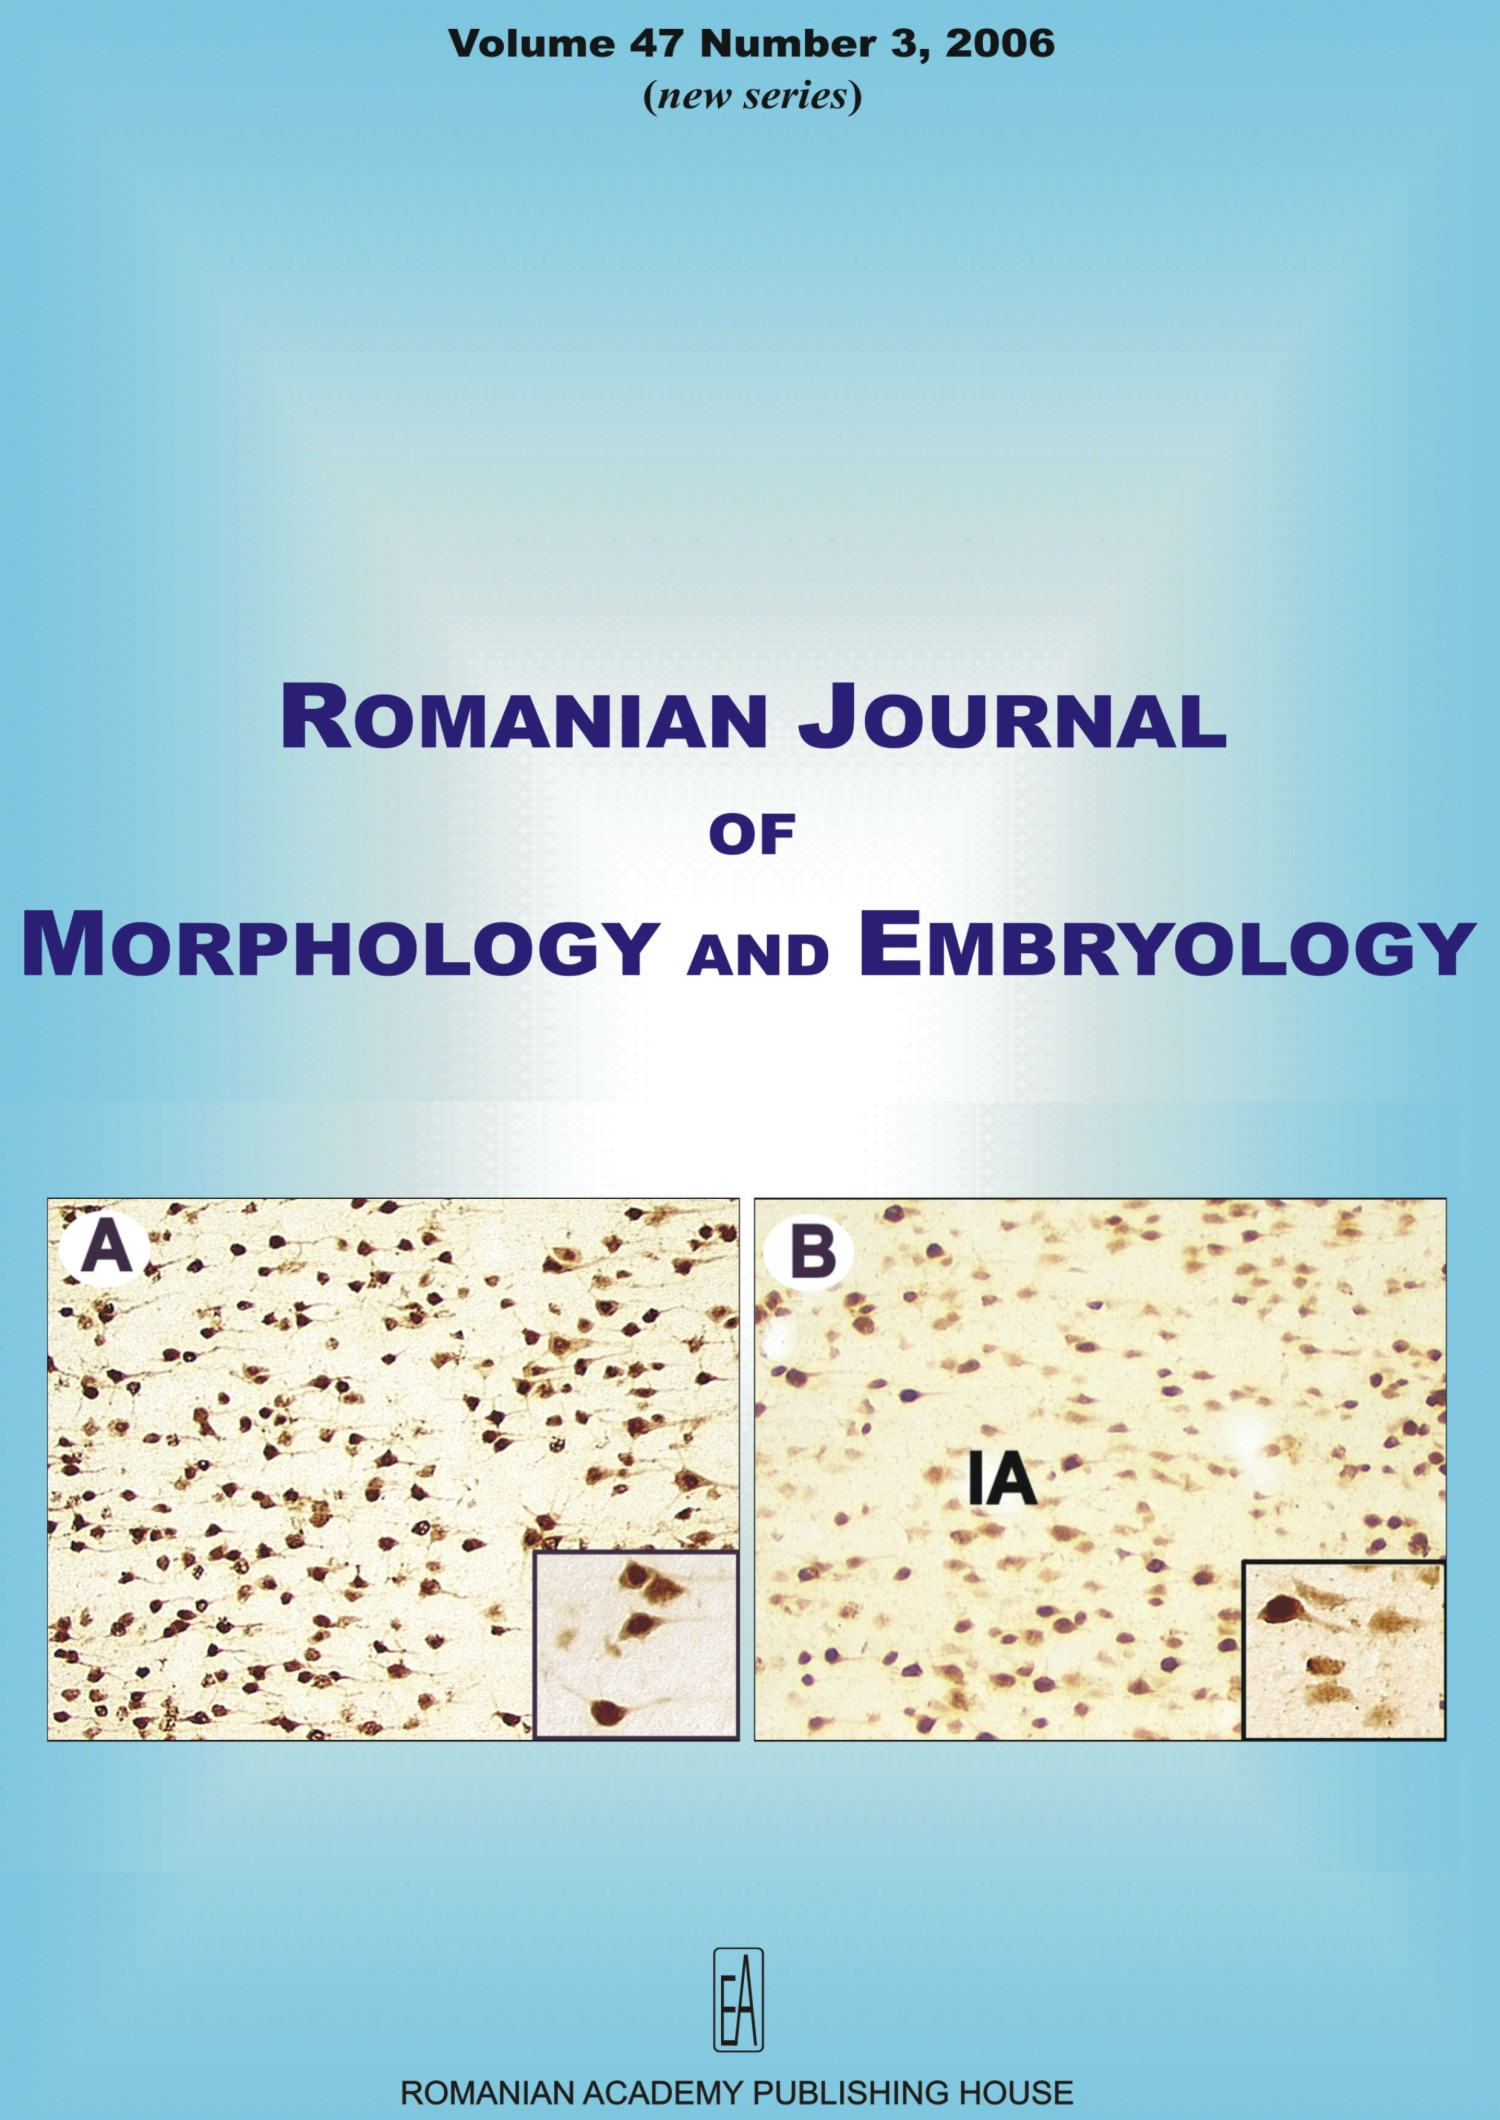 Romanian Journal of Morphology and Embryology, vol. 47 no. 3, 2006